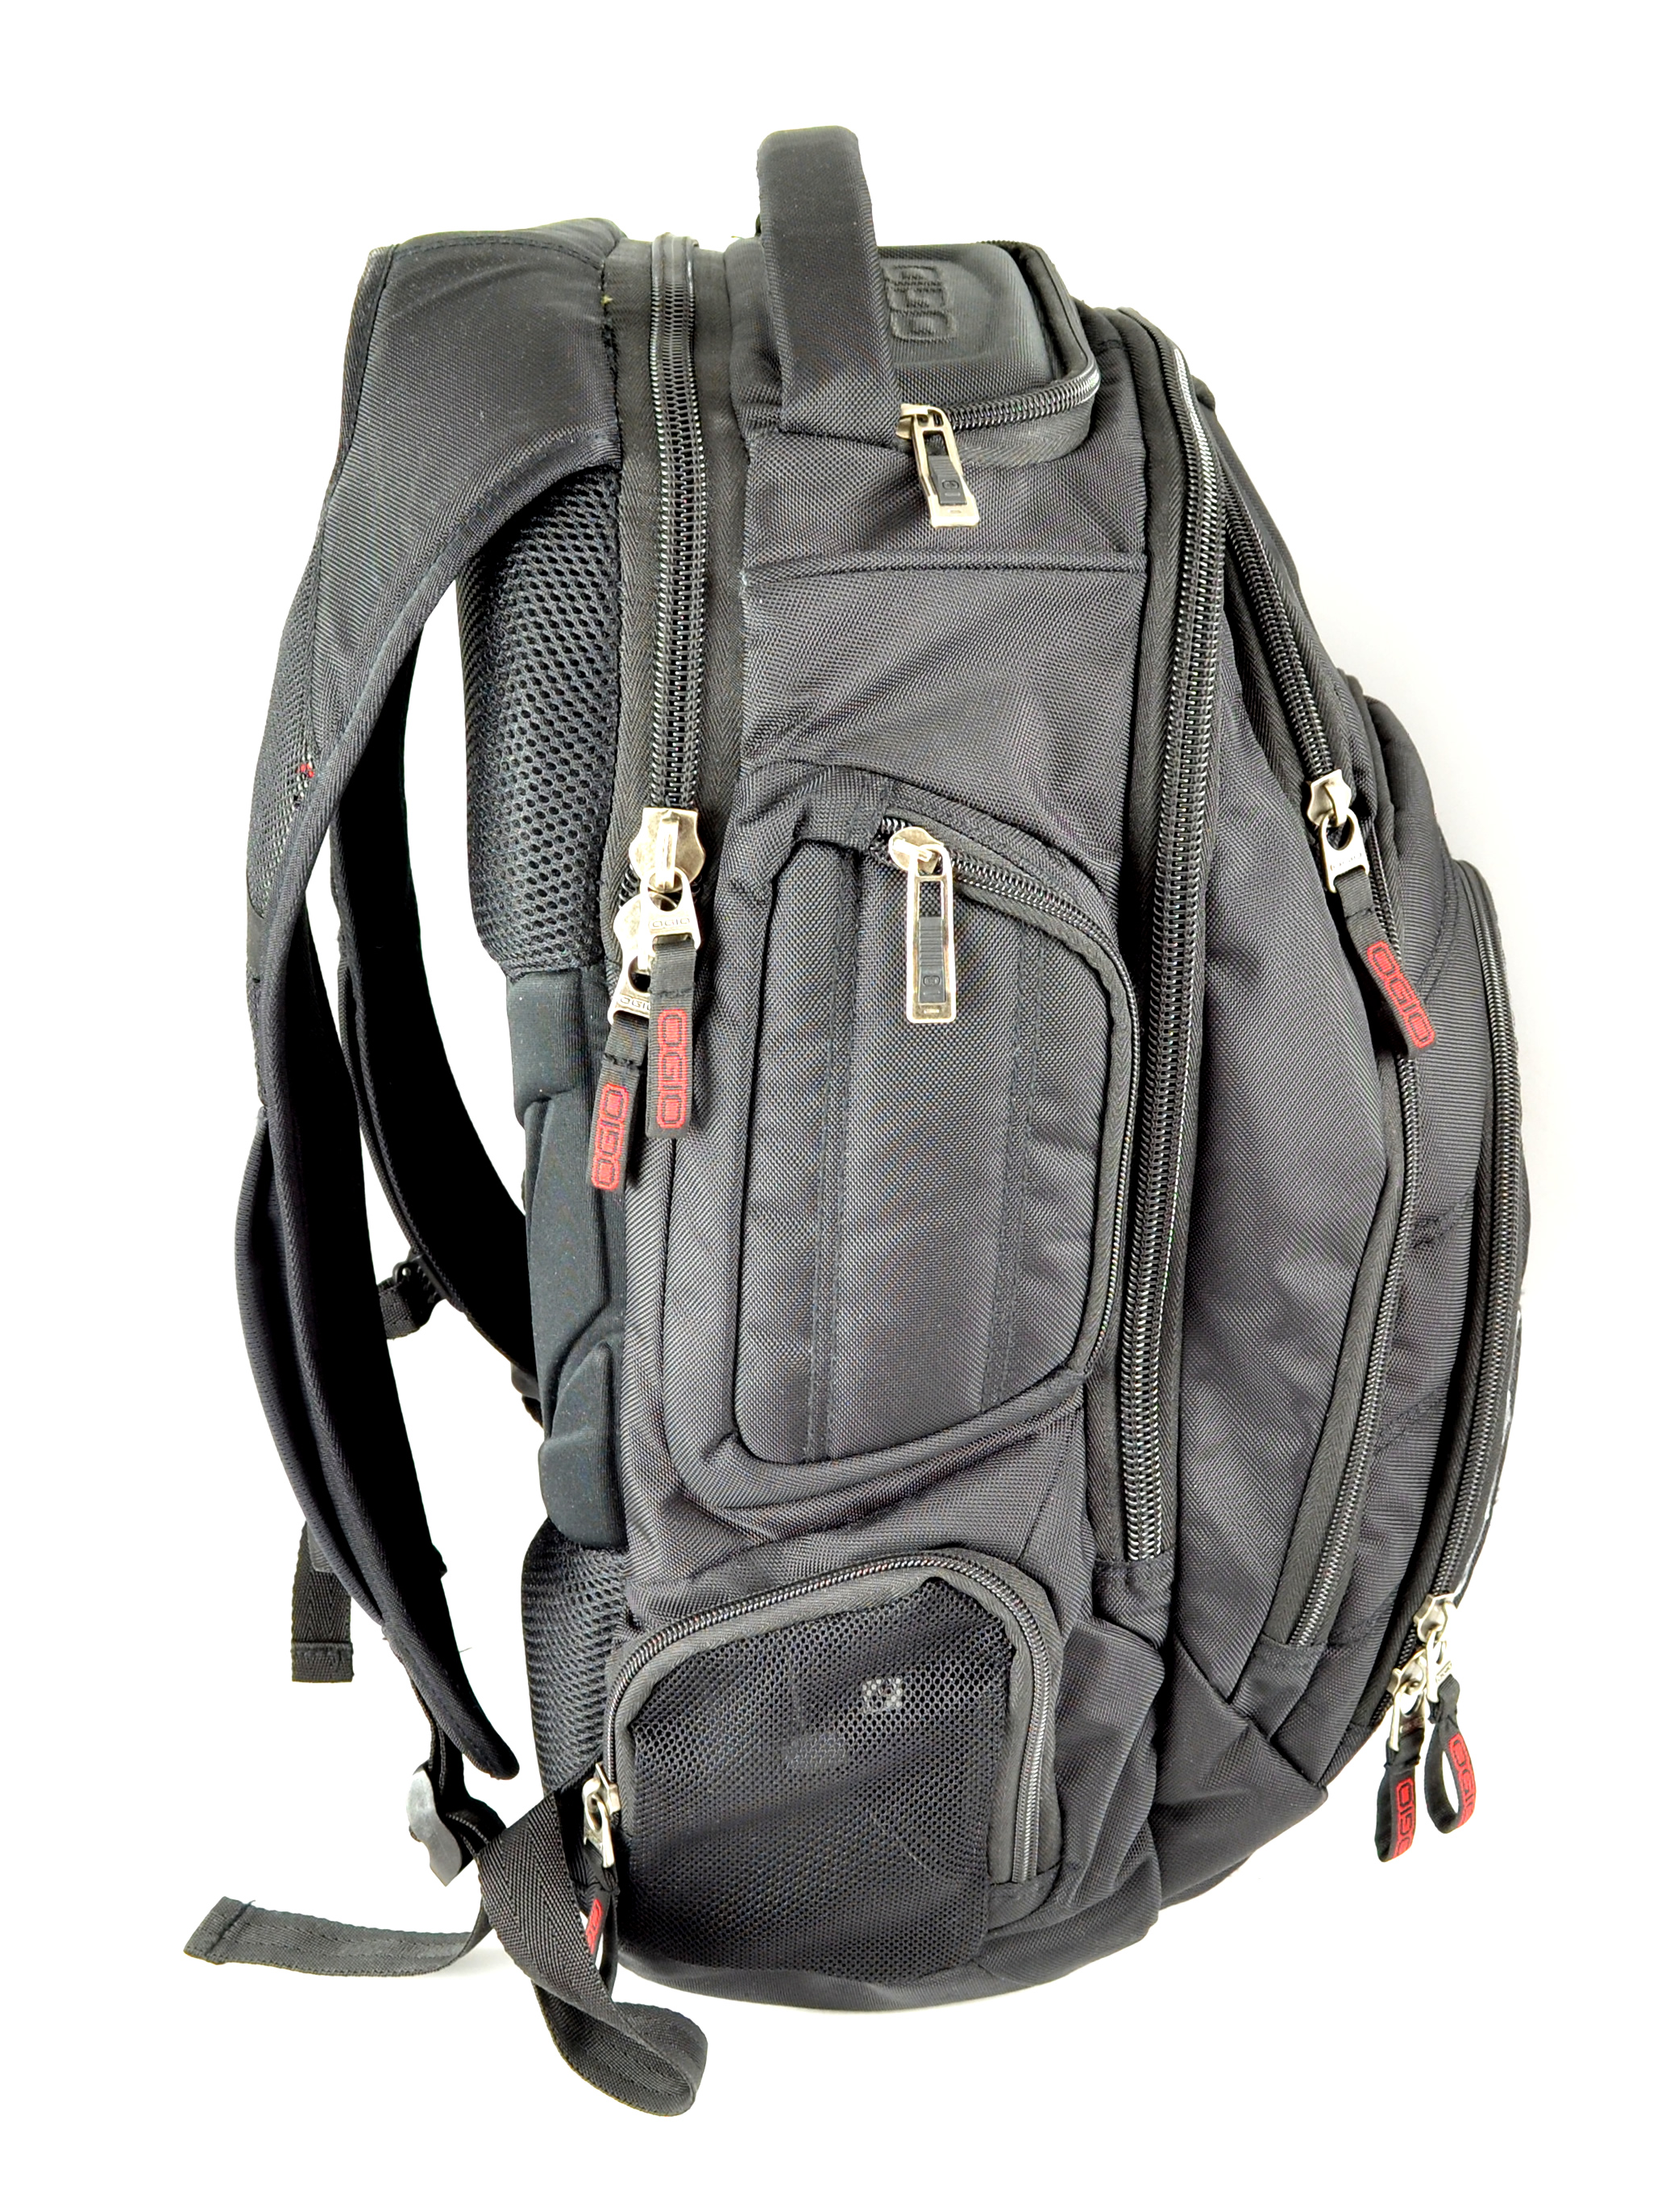 Ogio Renegade Backpack kYTvIJtA